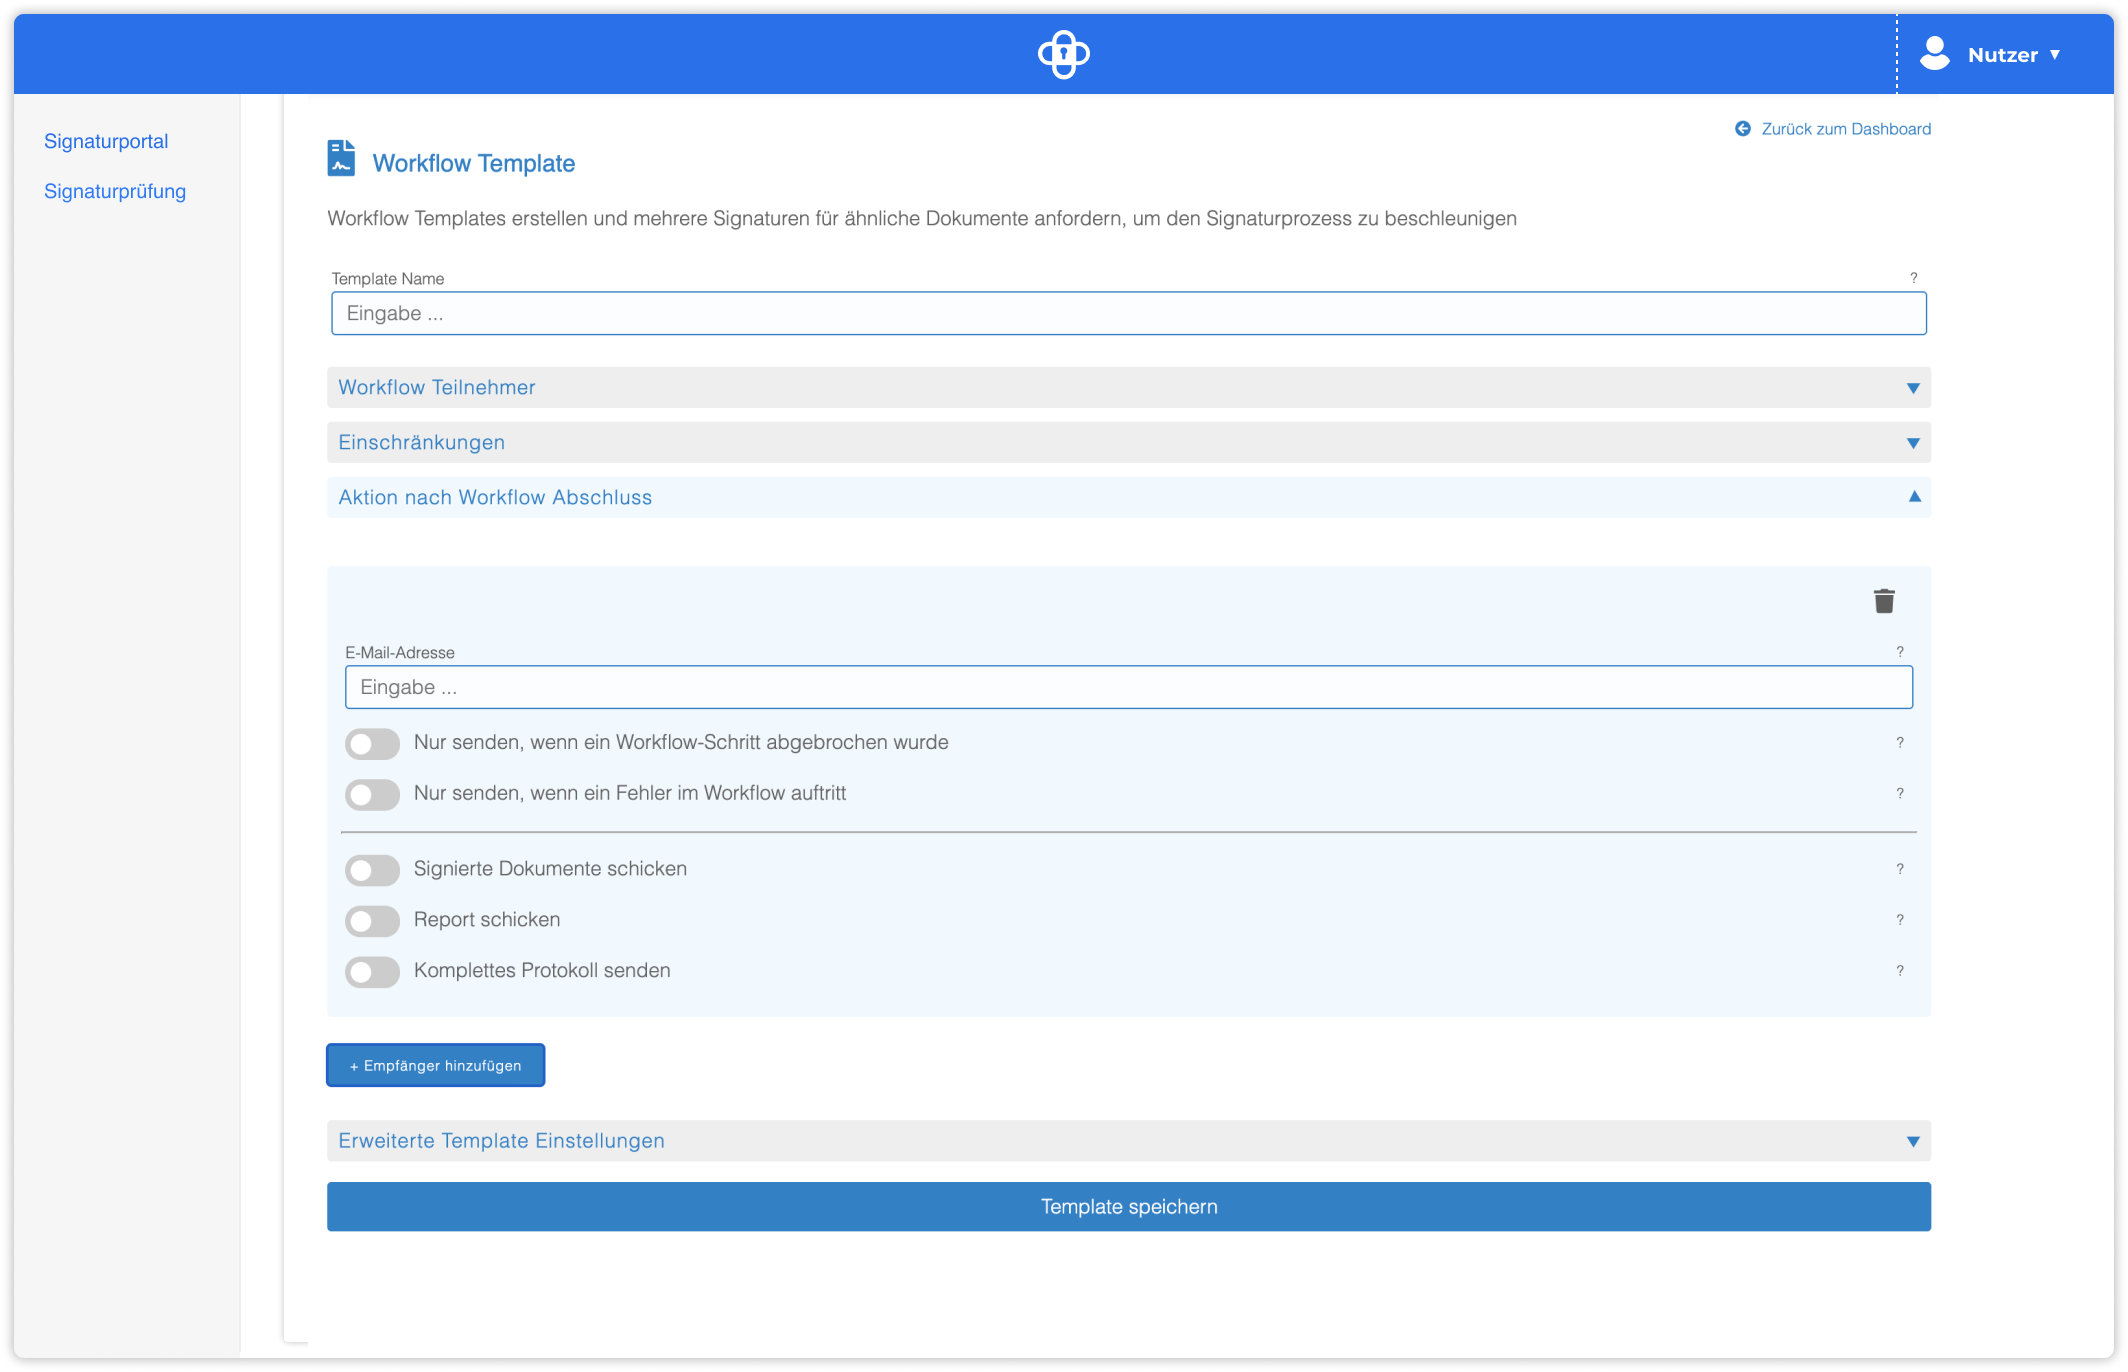 workflow template4